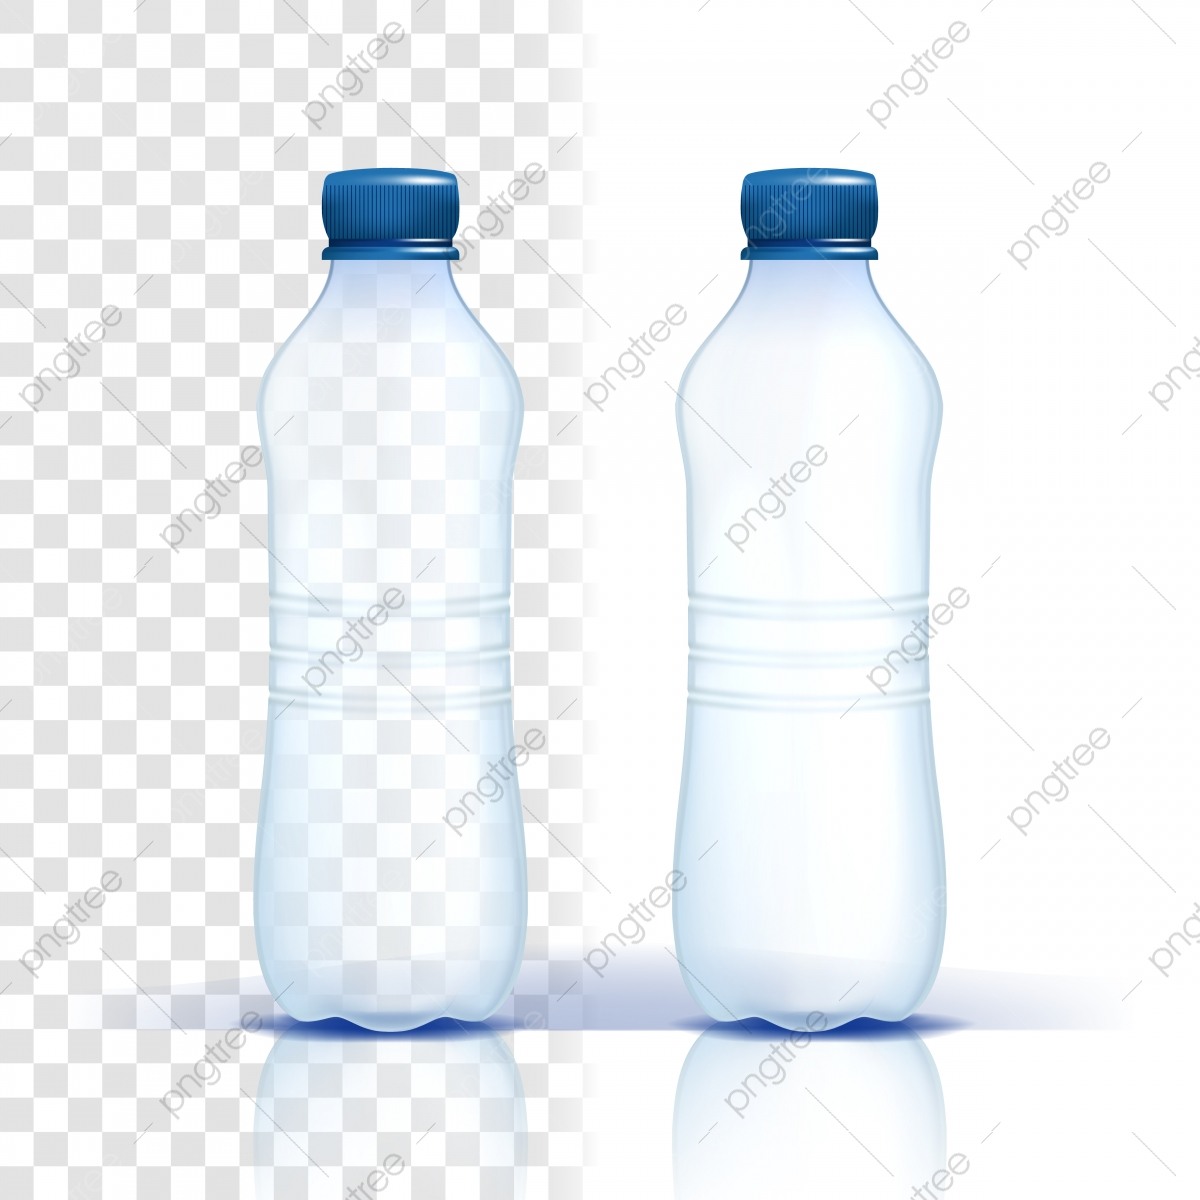 Free Water Bottle Clipart, Download Free Clip Art, Free Clip Art on Clipart  Library